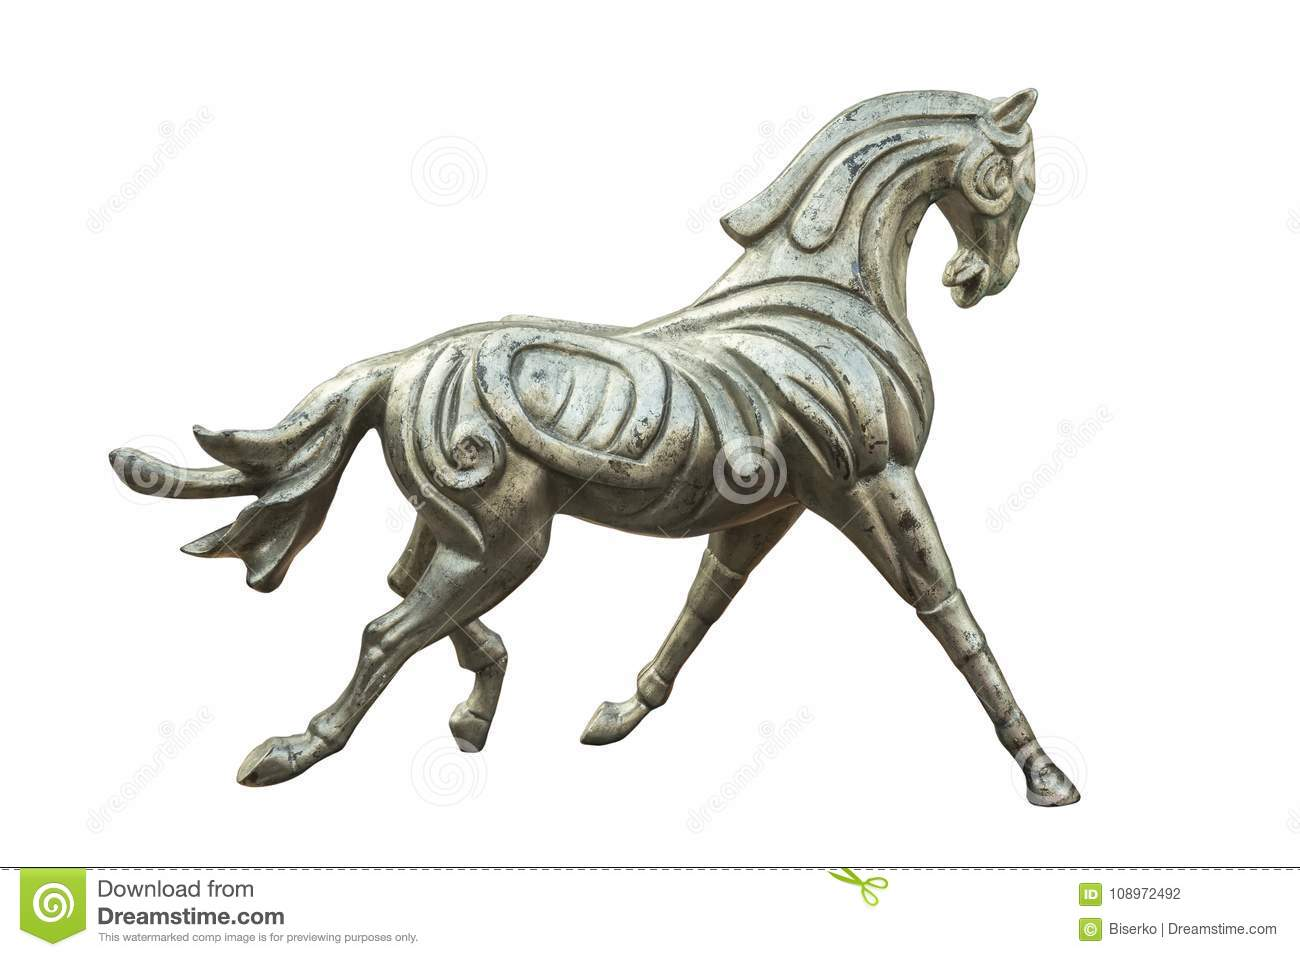 Sculpture of the horse